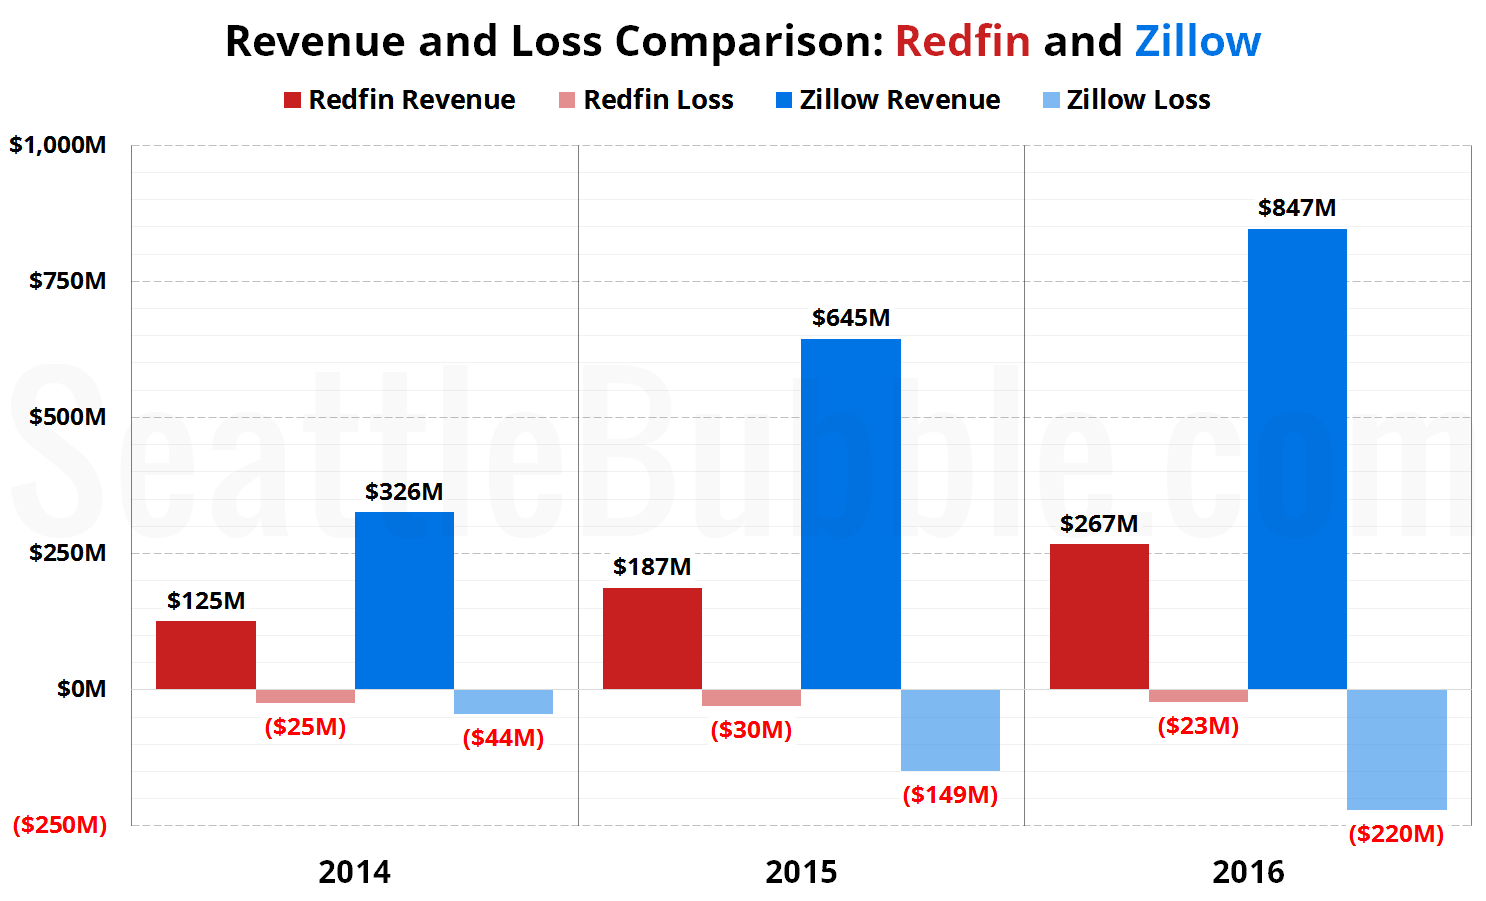 Revenue and Loss Comparison: Redfin and Zillow (2014-2016)